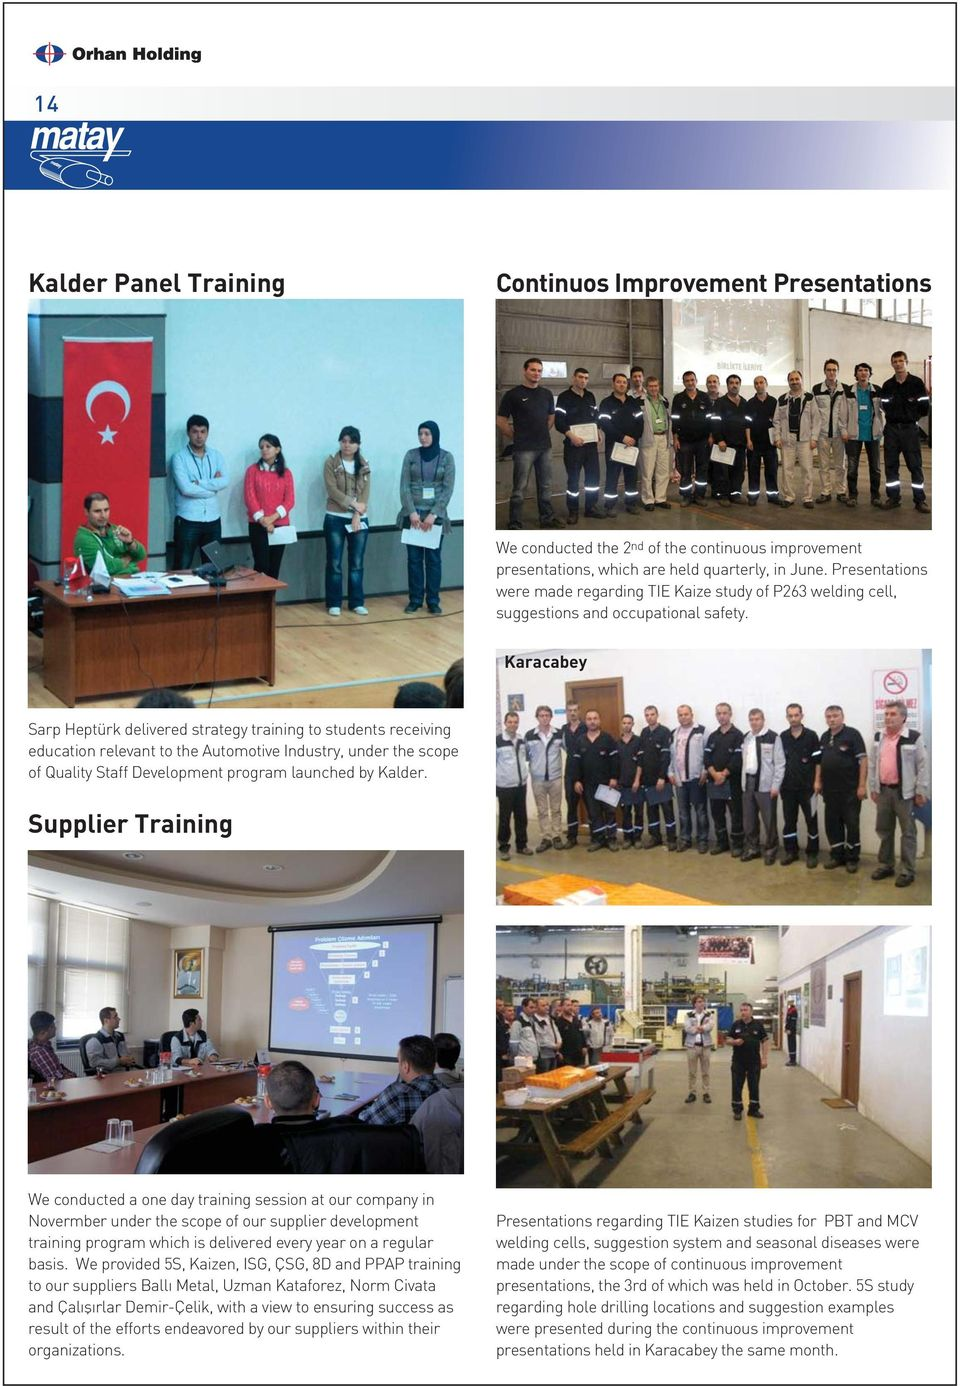 Karacabey Sarp Heptürk delivered strategy training to students receiving education relevant to the Automotive Industry, under the scope of Quality Staff Development program launched by Kalder.